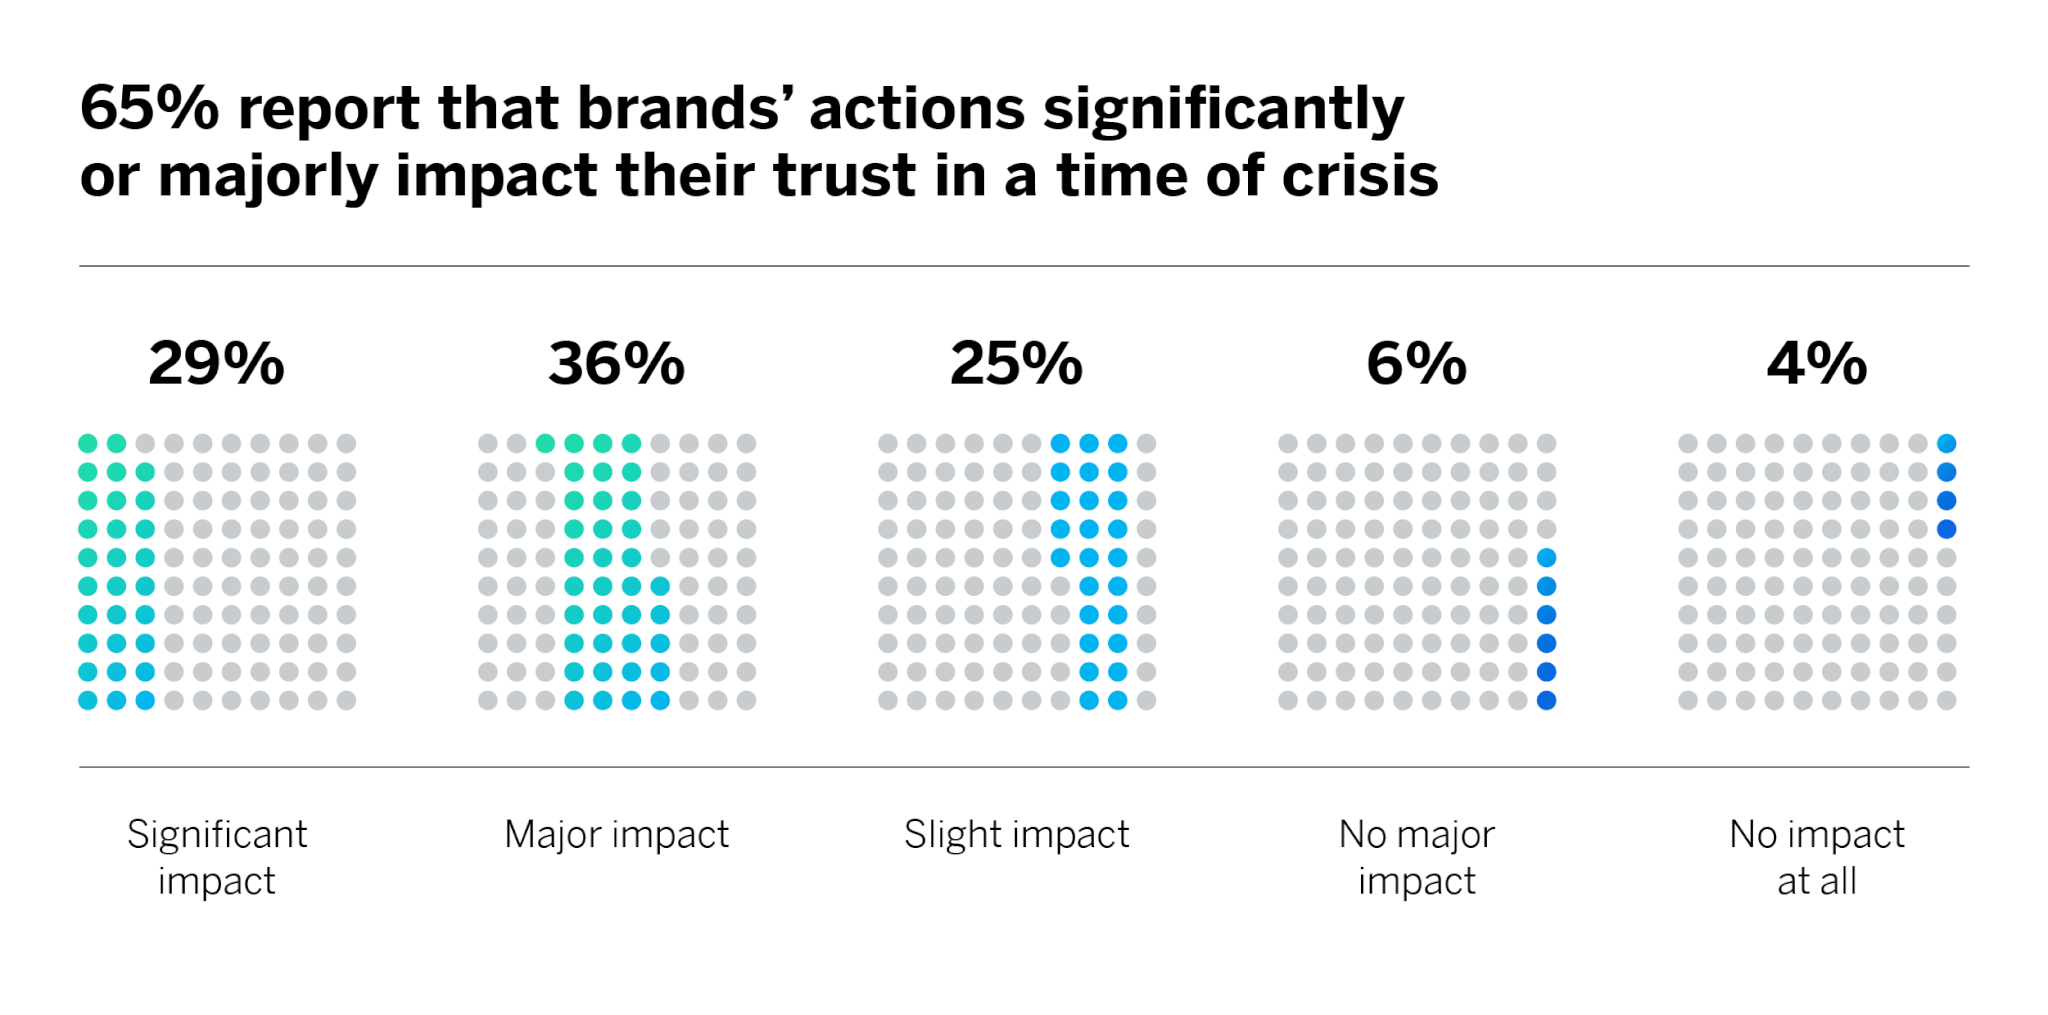 Brand Action Impacts Trust